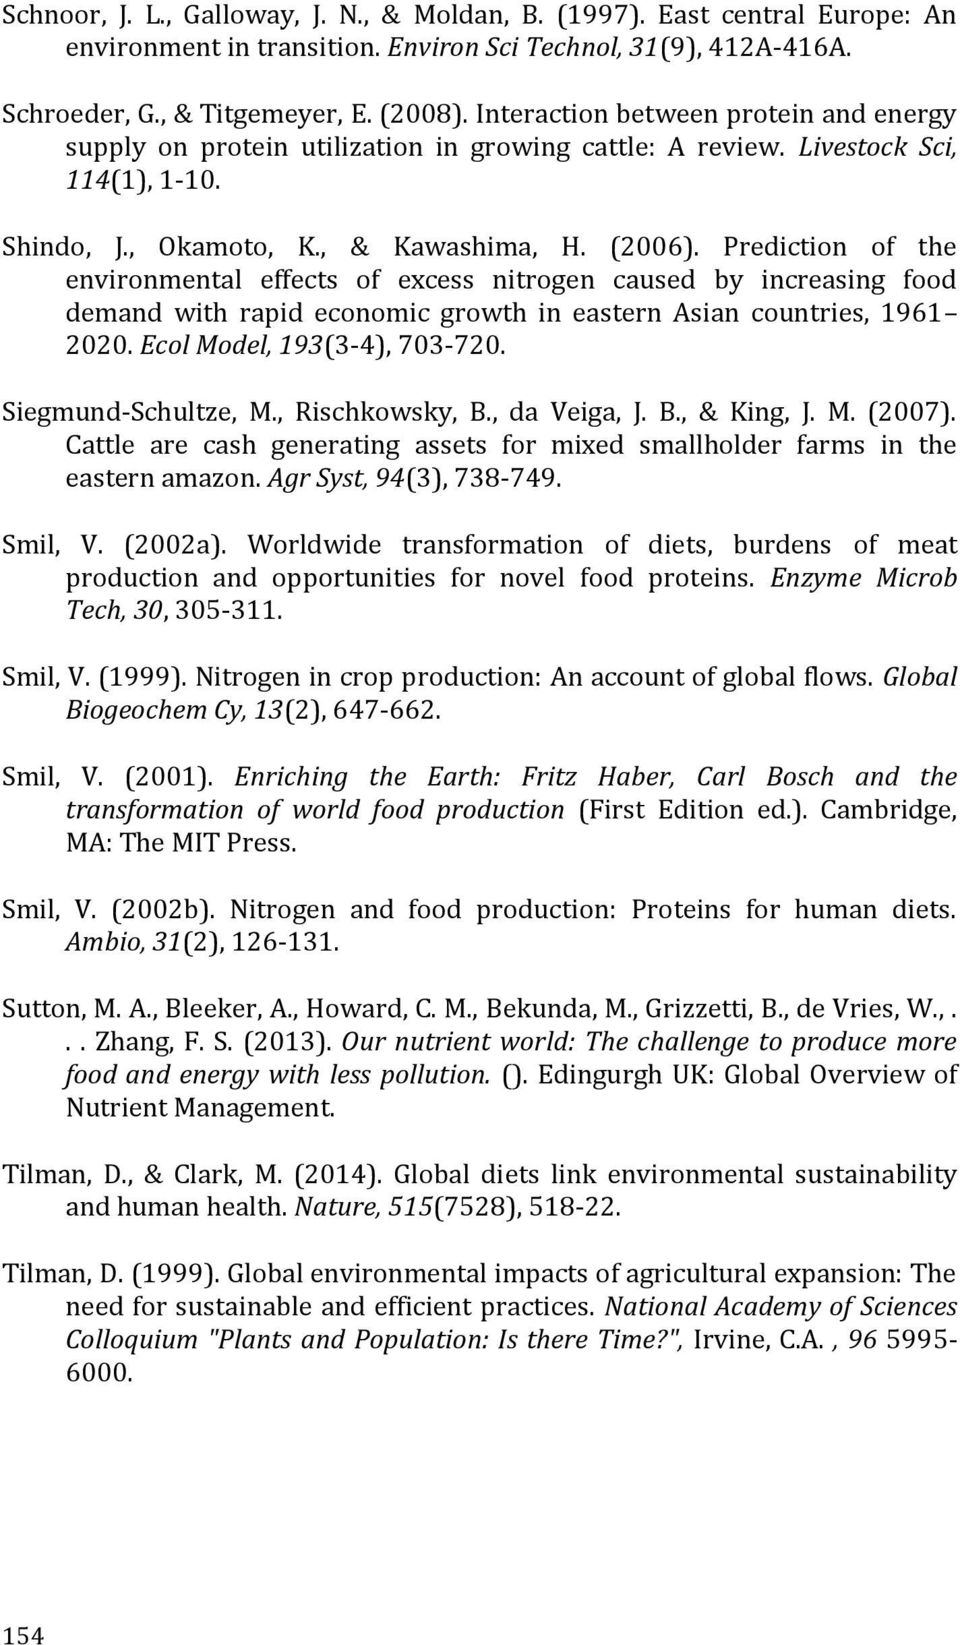 Prediction of the environmental effects of excess nitrogen caused by increasing food demand with rapid economic growth in eastern Asian countries, 1961 2020. Ecol Model, 193(3-4), 703-720.